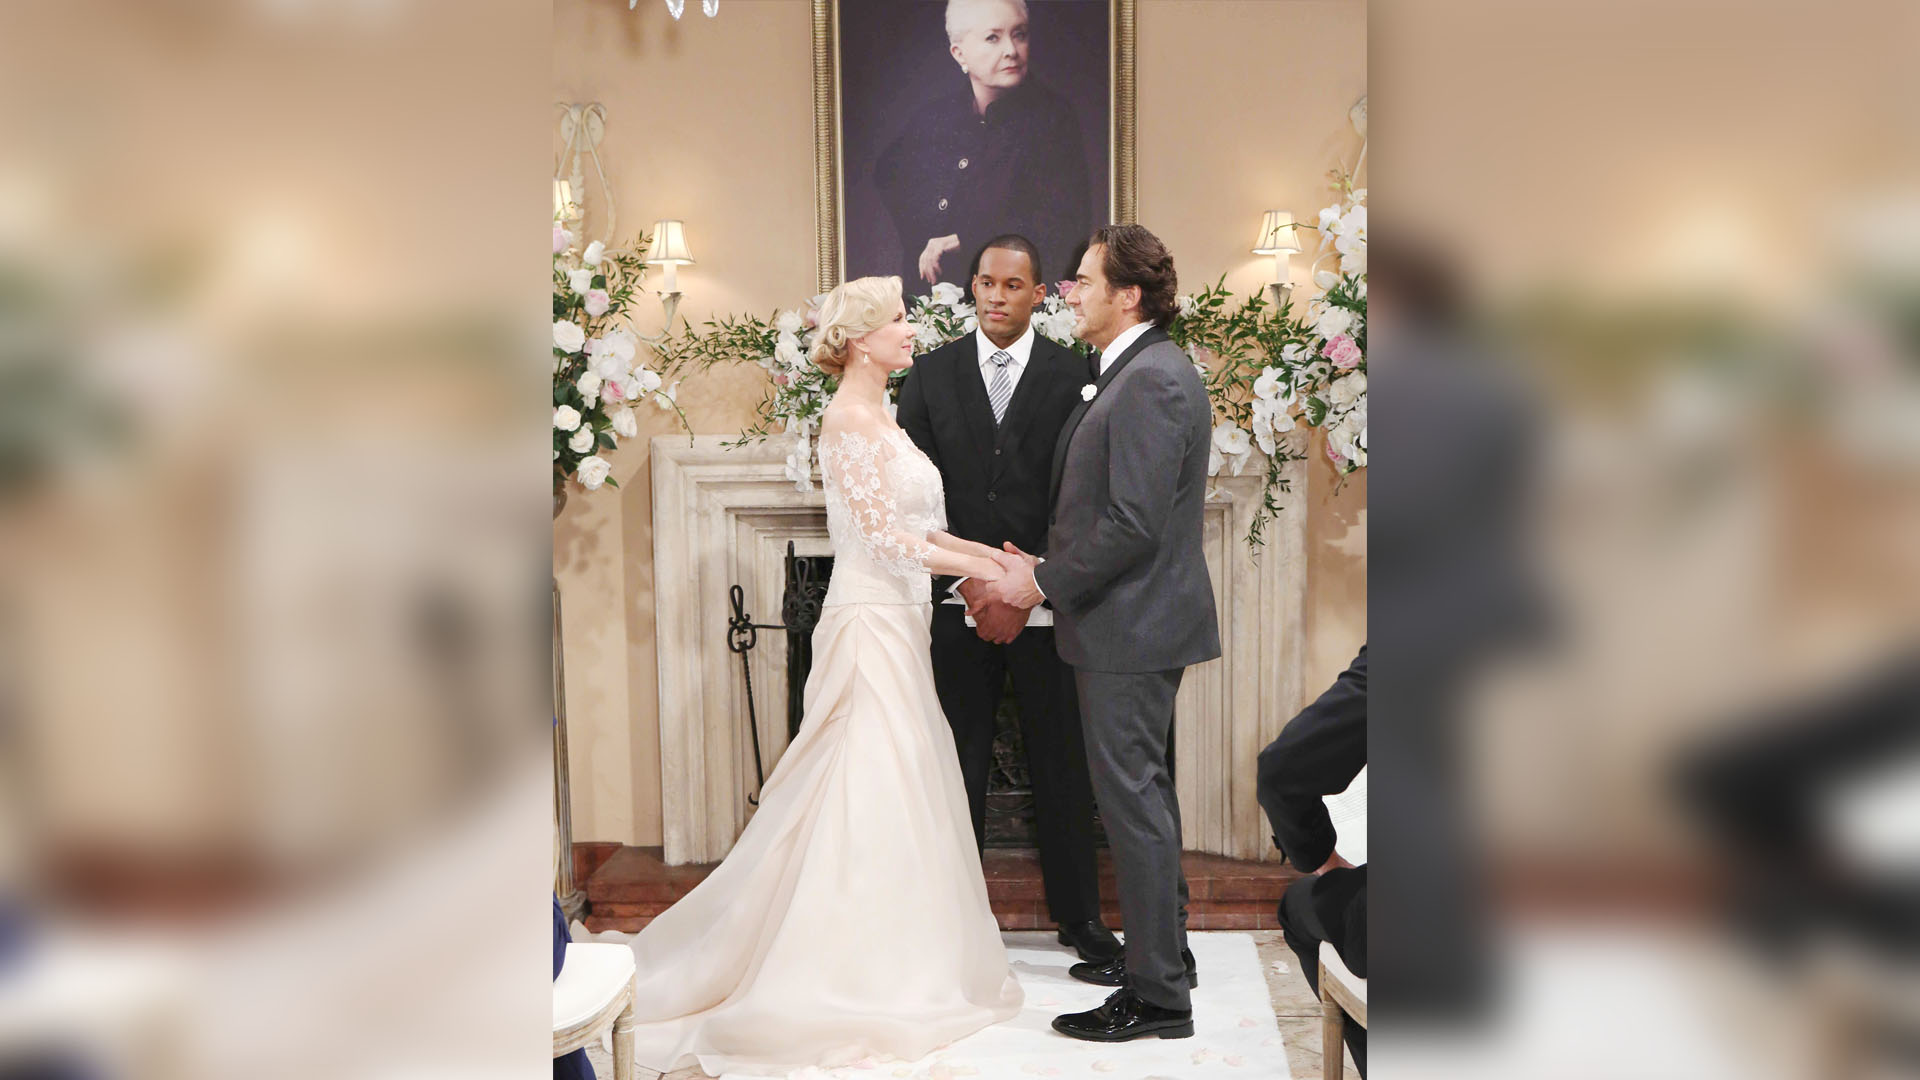 Surrounded by family and friends, and with a familiar face above the fireplace, Brooke and Ridge's wedding begins.